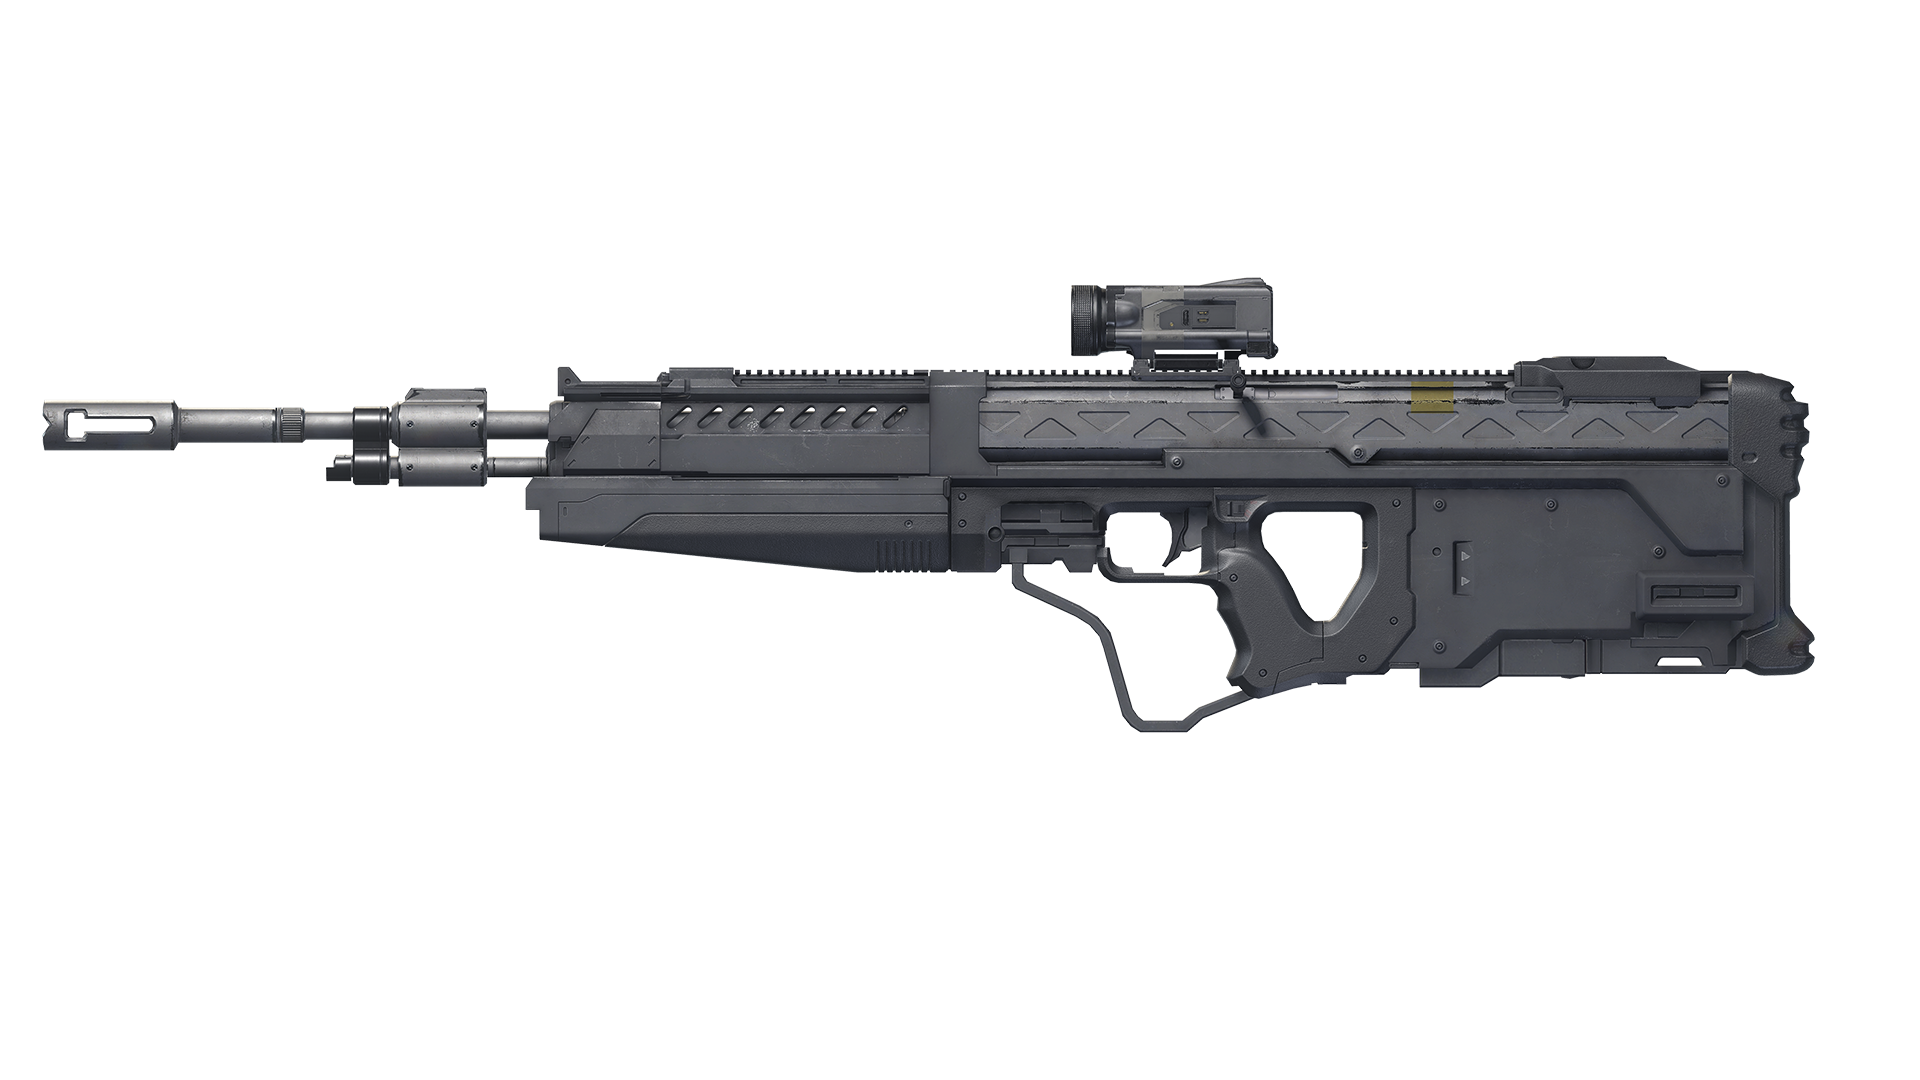 Halo 5 Official Images Weapon Renders Halofanforlife